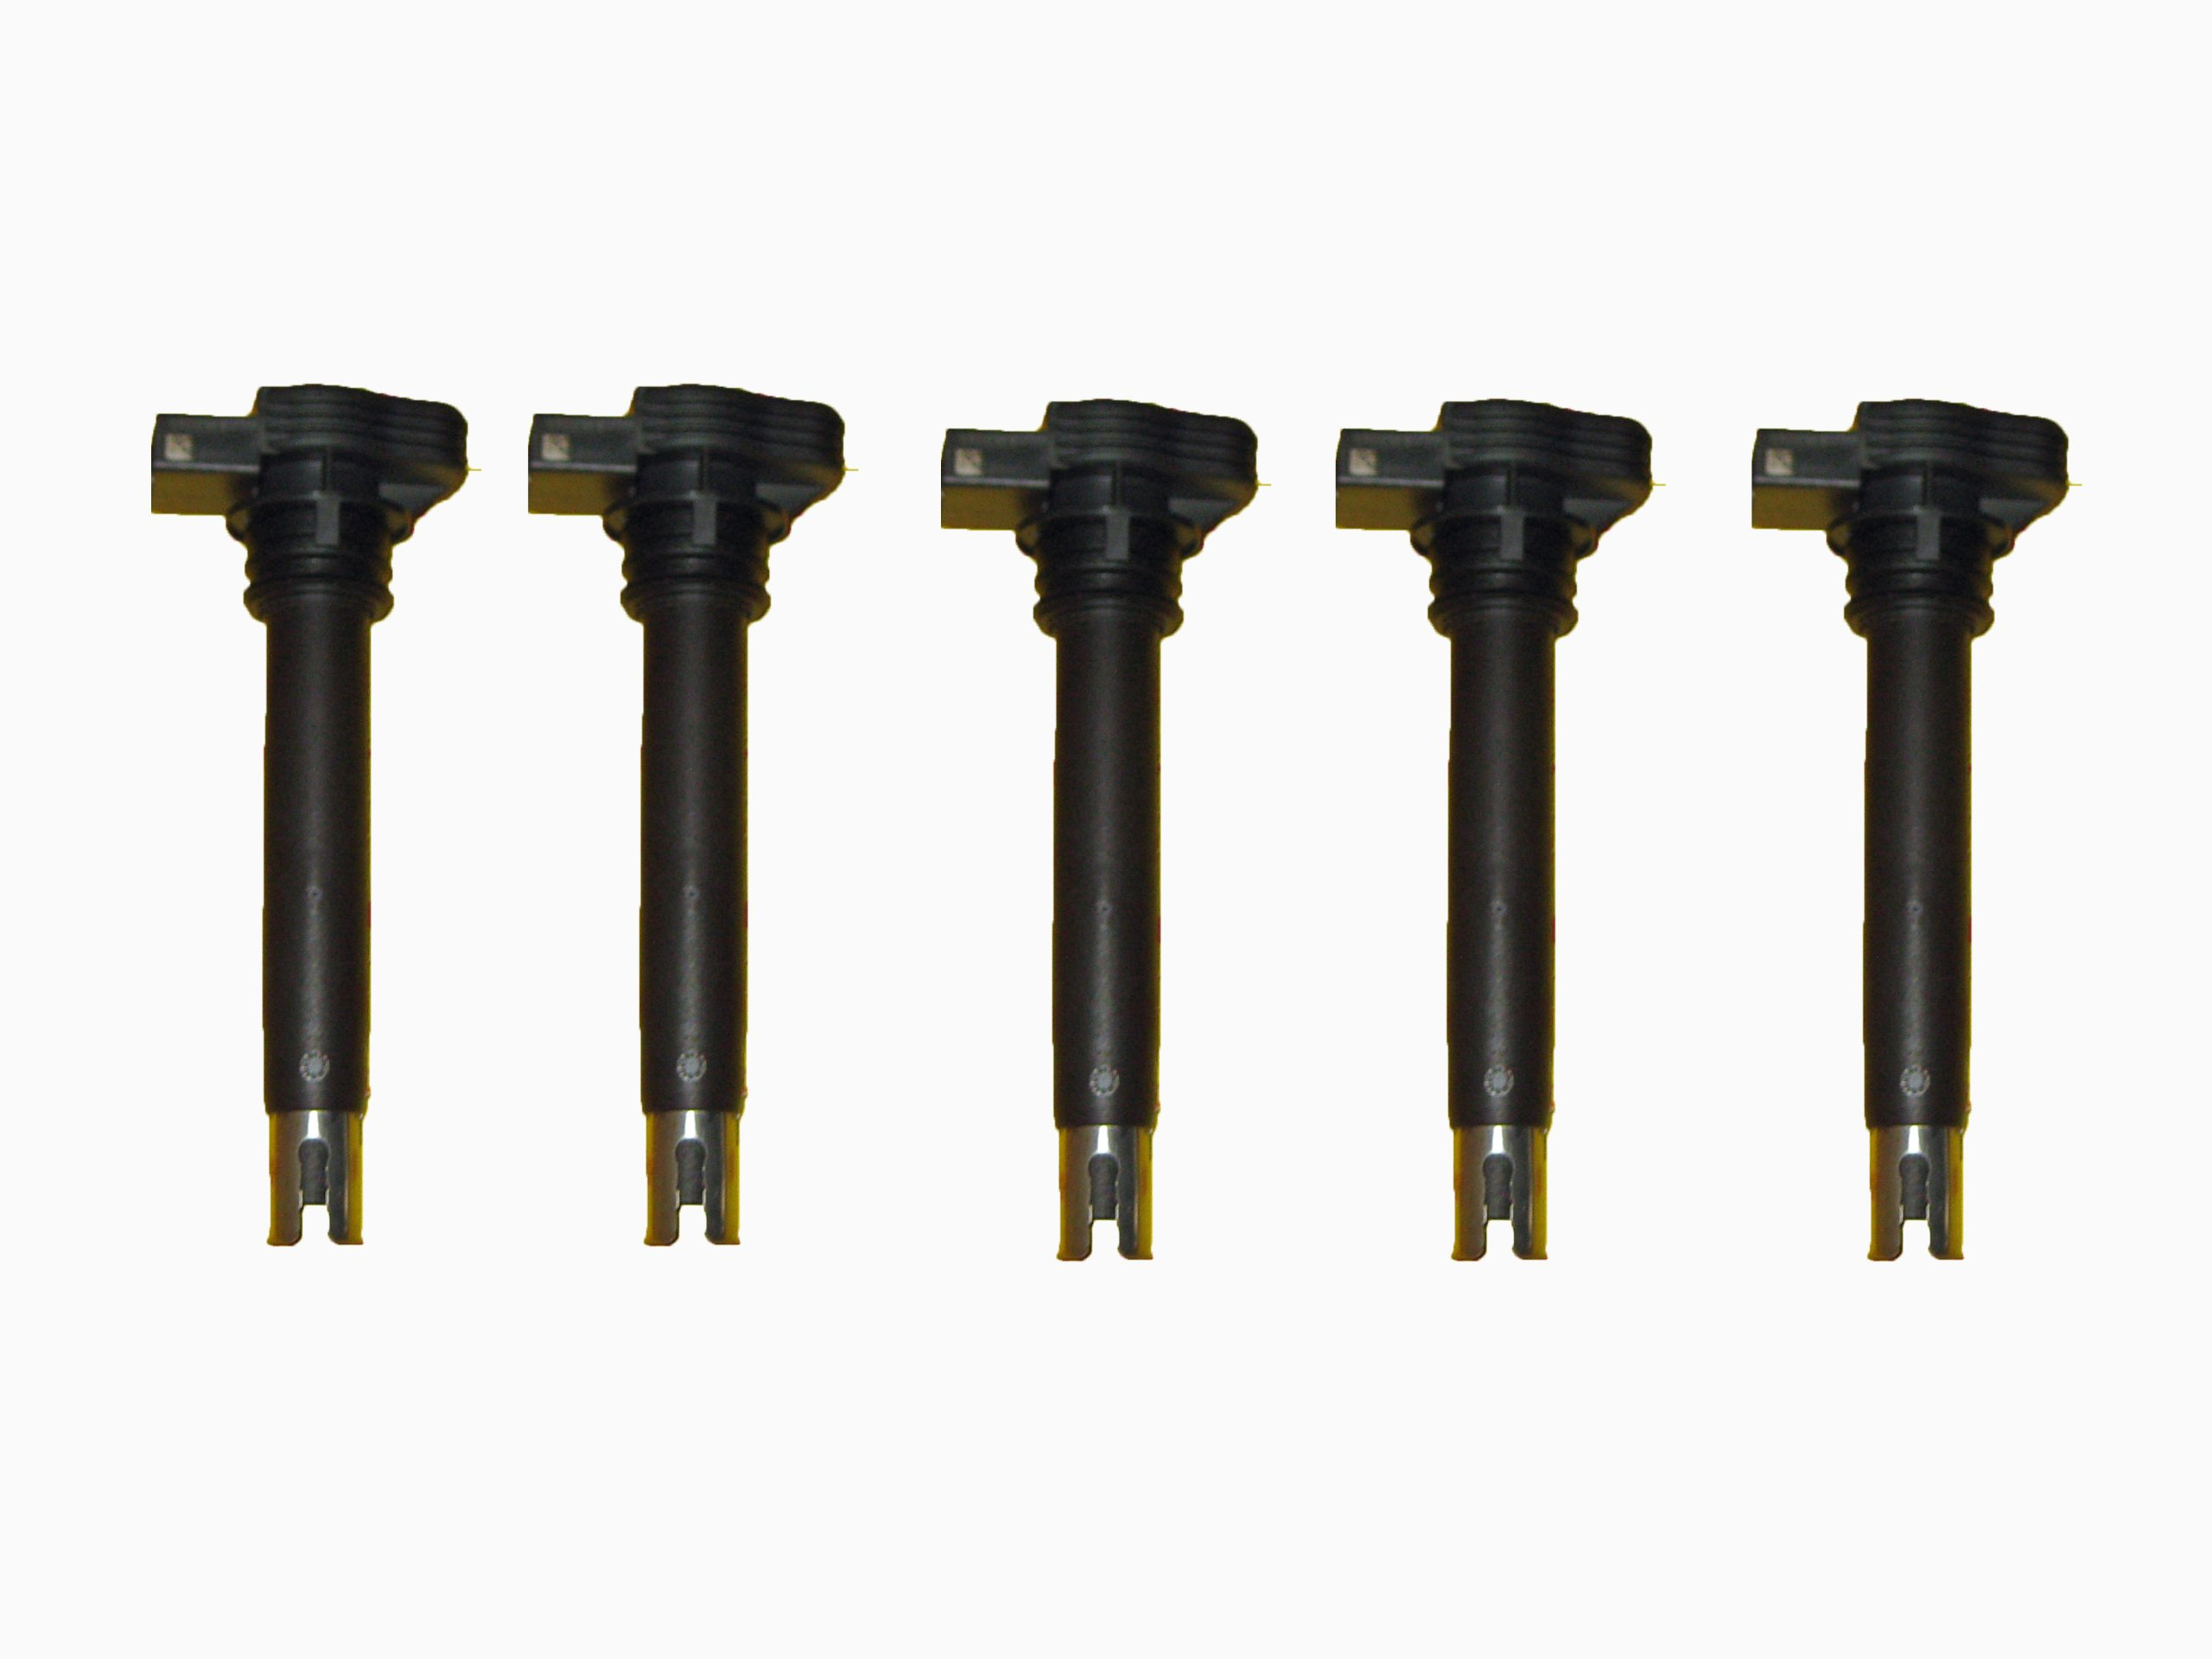 5 Piece Set of Bosch OEM Ignition Coils # 0221604115 - Audi / VW # 06H905115B / 07K905715F by Bosch